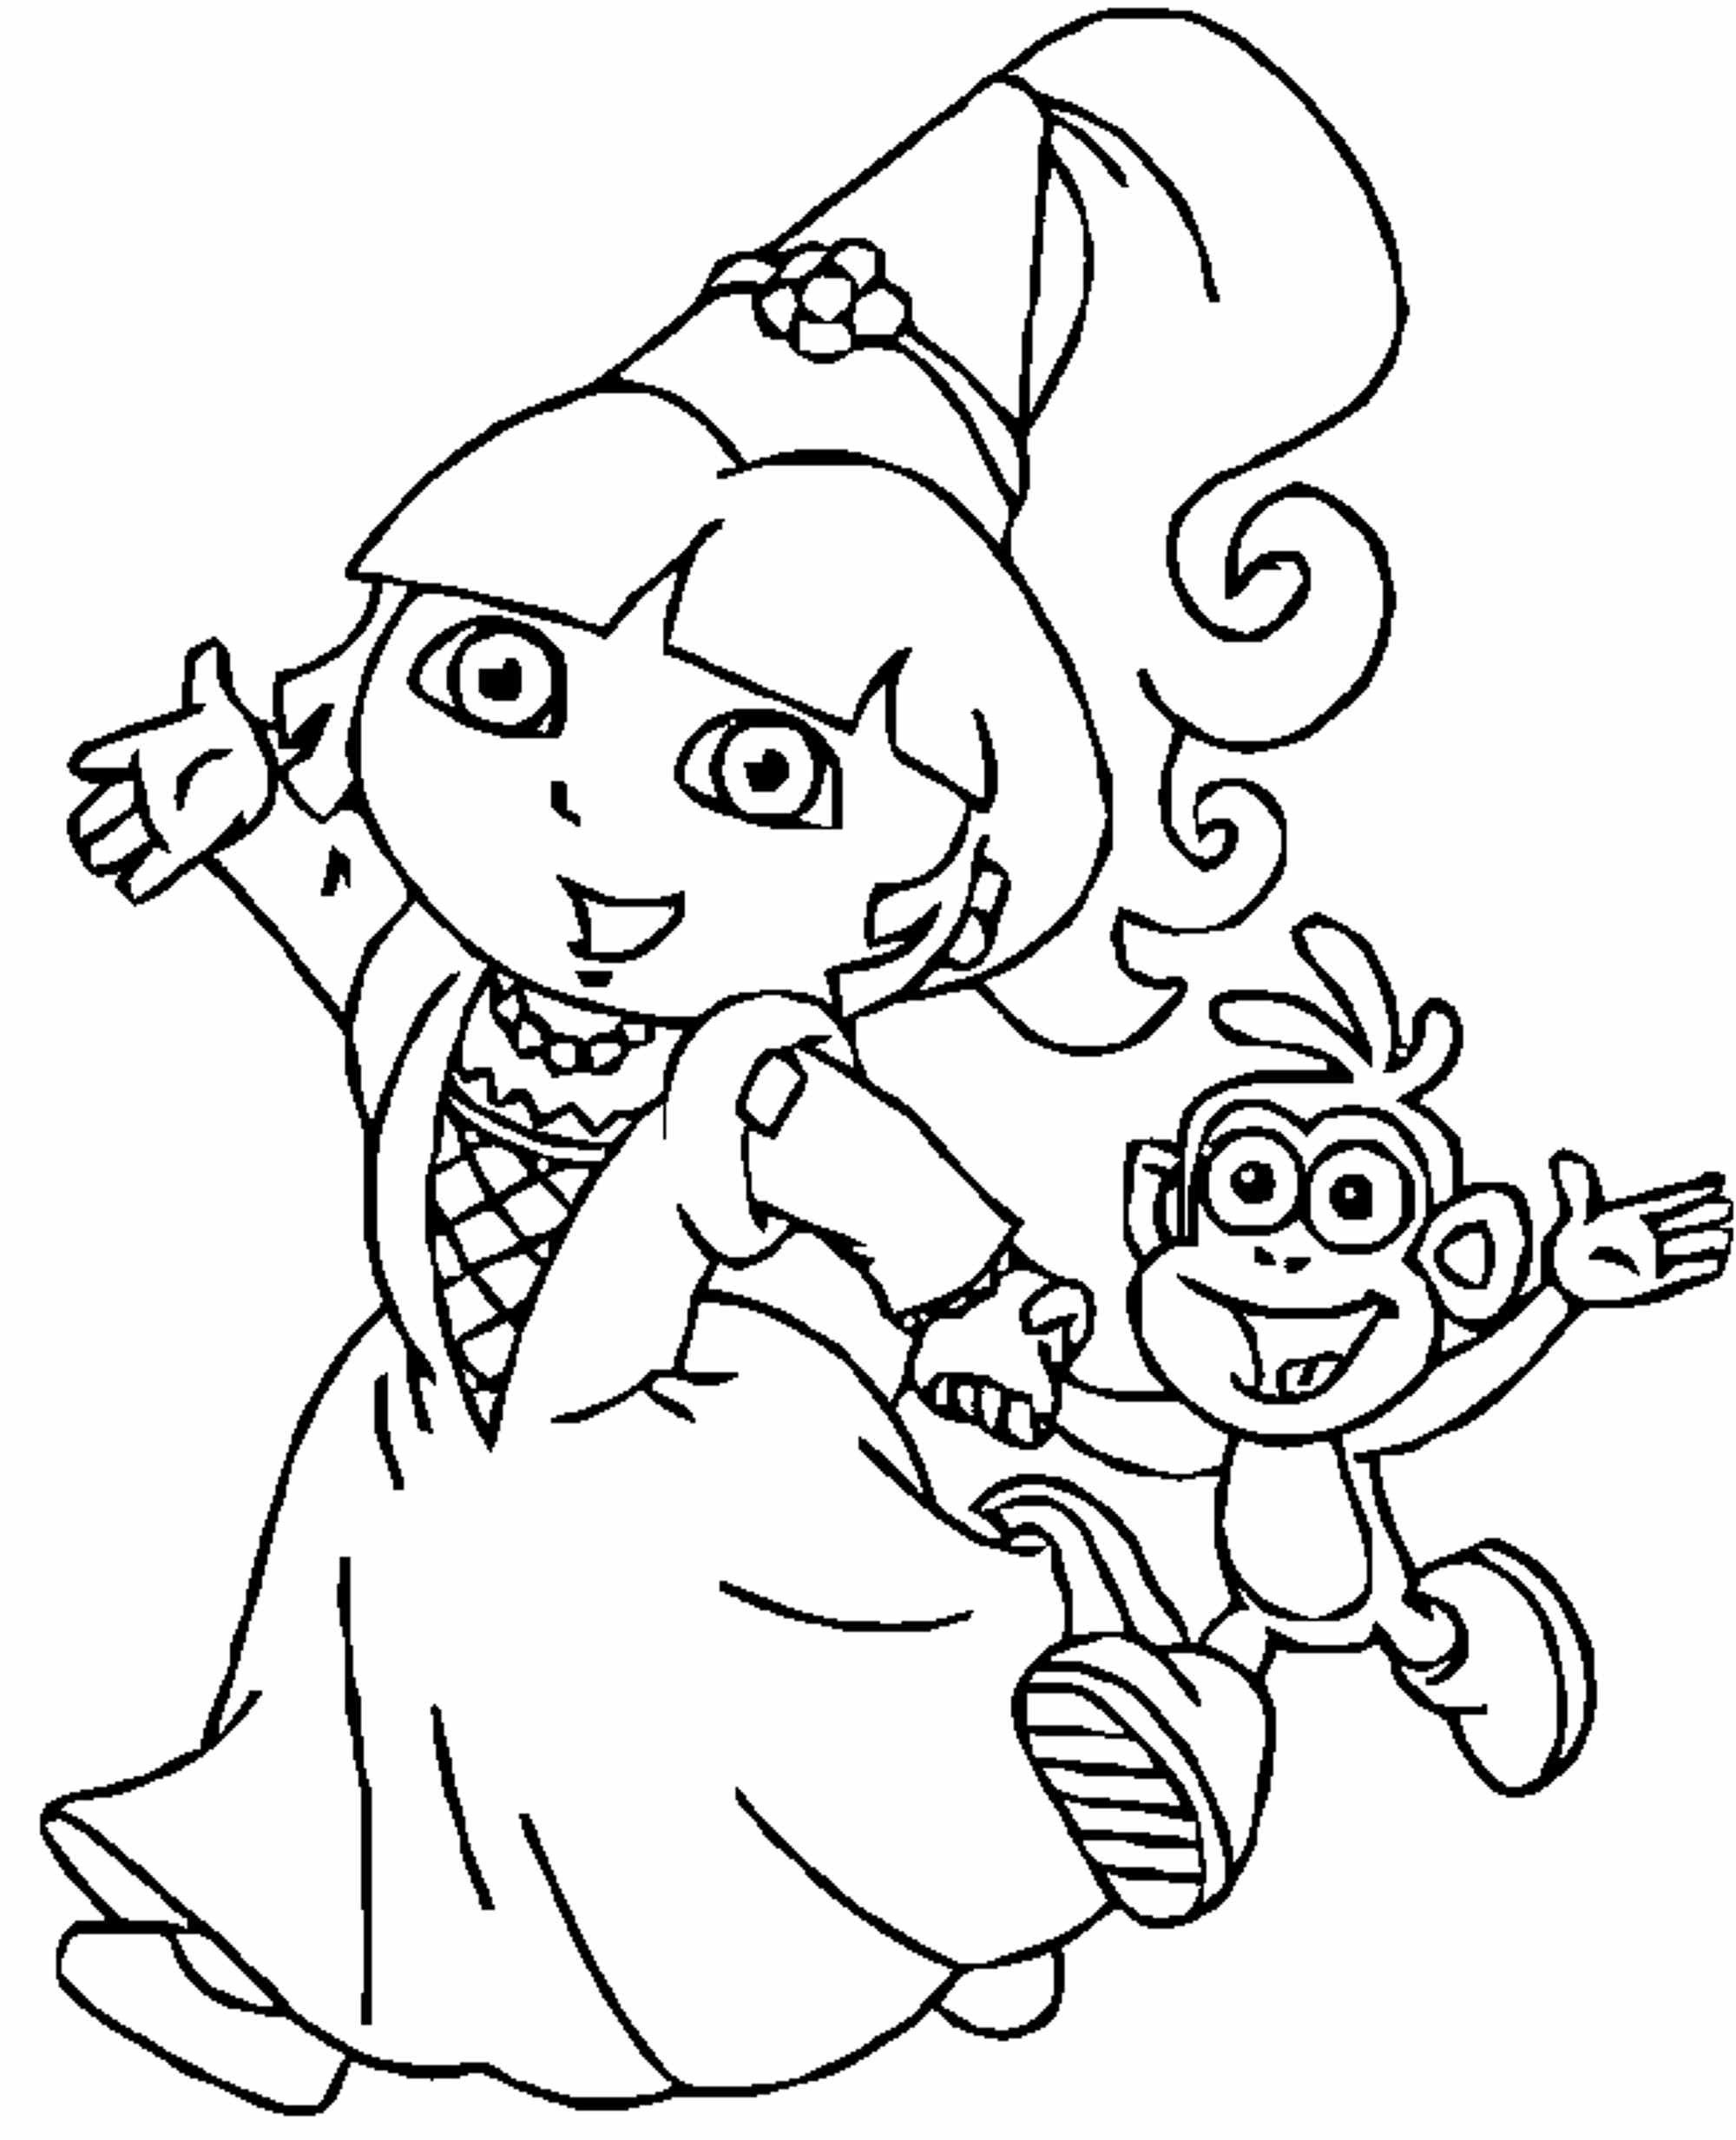 Momjunction Princess Coloring Page From The Thousands Of Images On The Net About Momjunction Princess Coloring Pa Dora Aventura Desenhos Para Pintar Desenhos